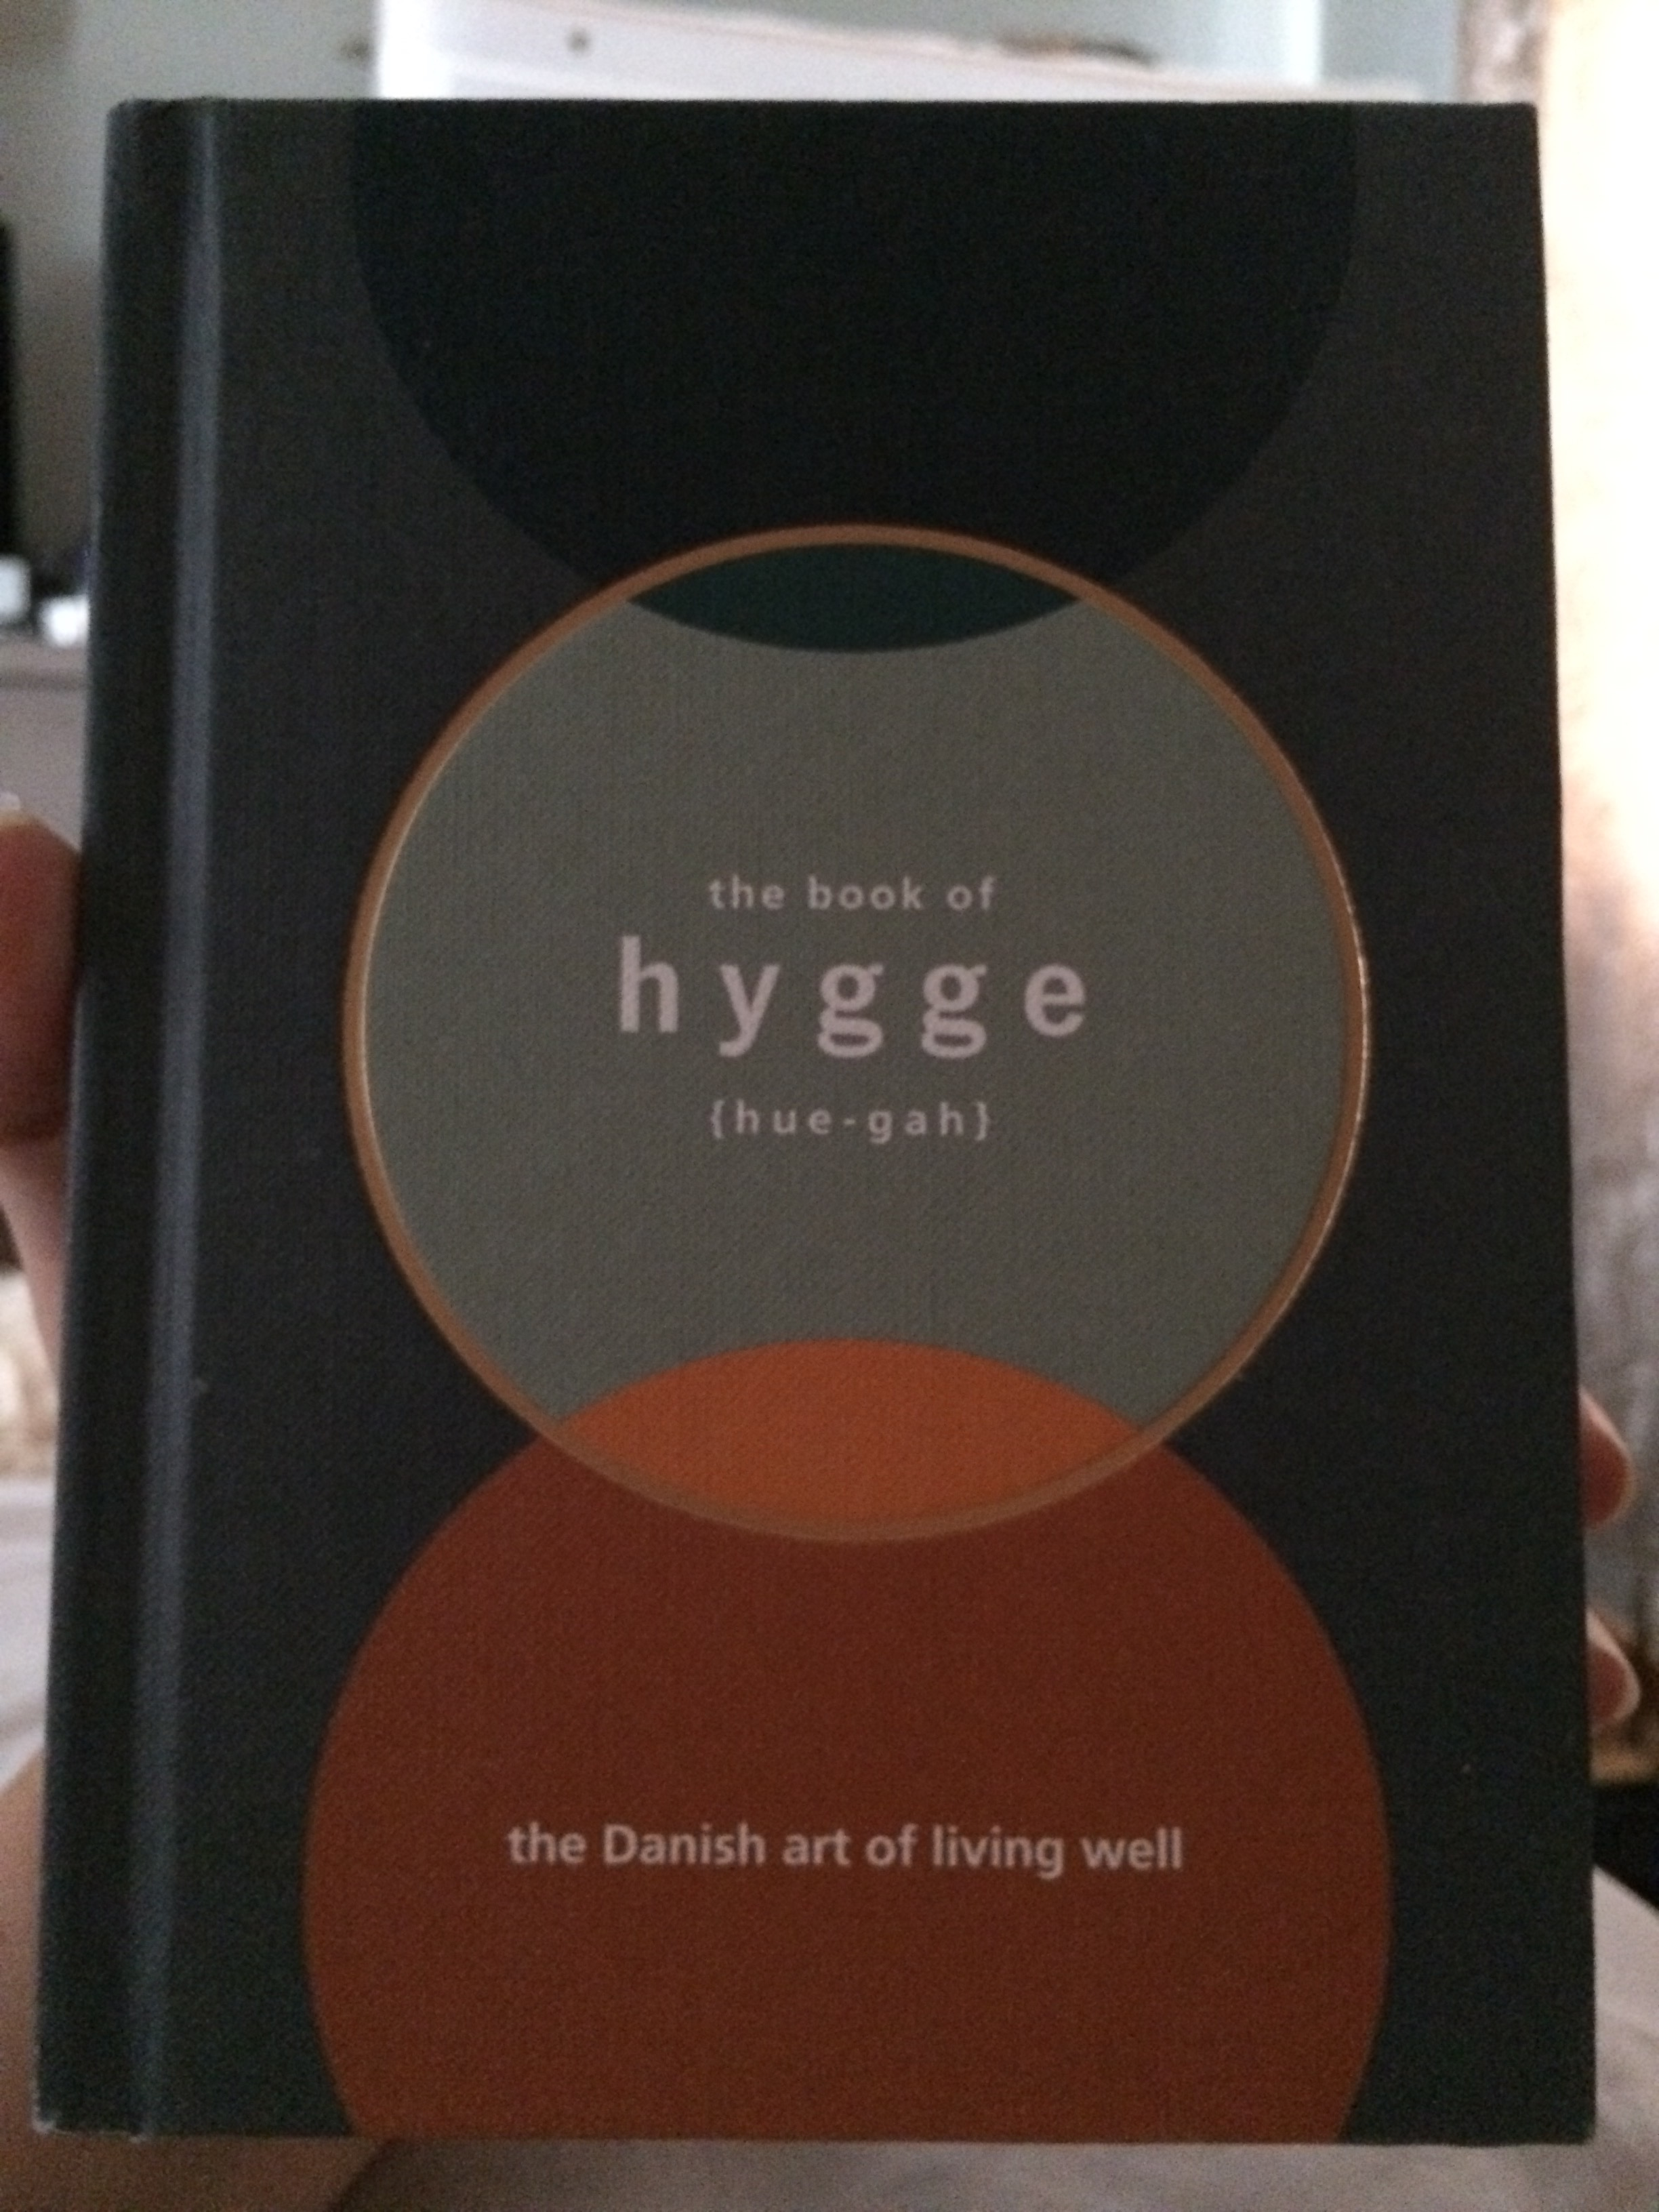 The book of Hygge, the danish art of living well